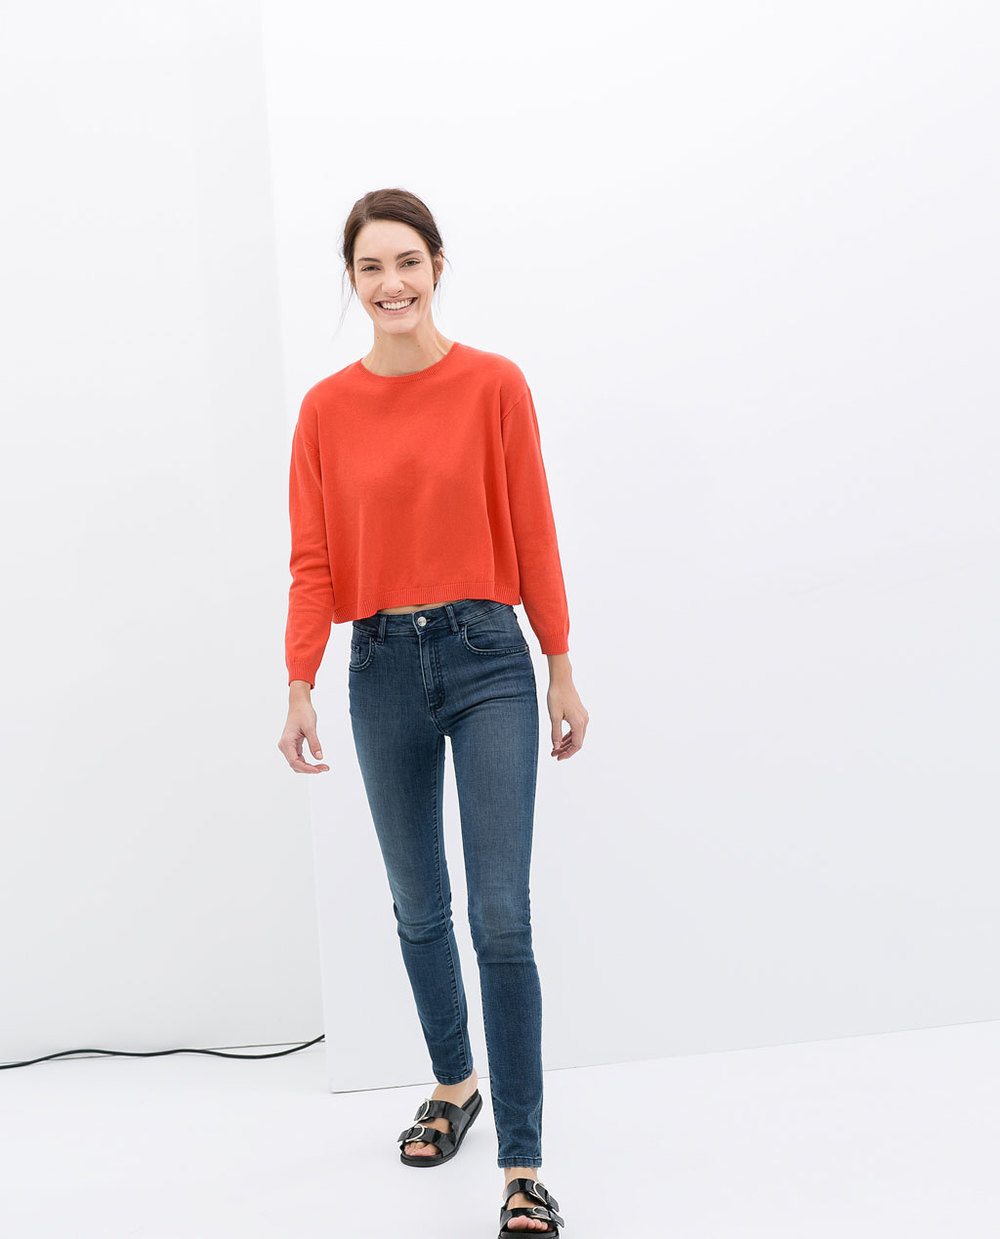 Cropped sweater. Available in multiple colors. Zara. $16.90.